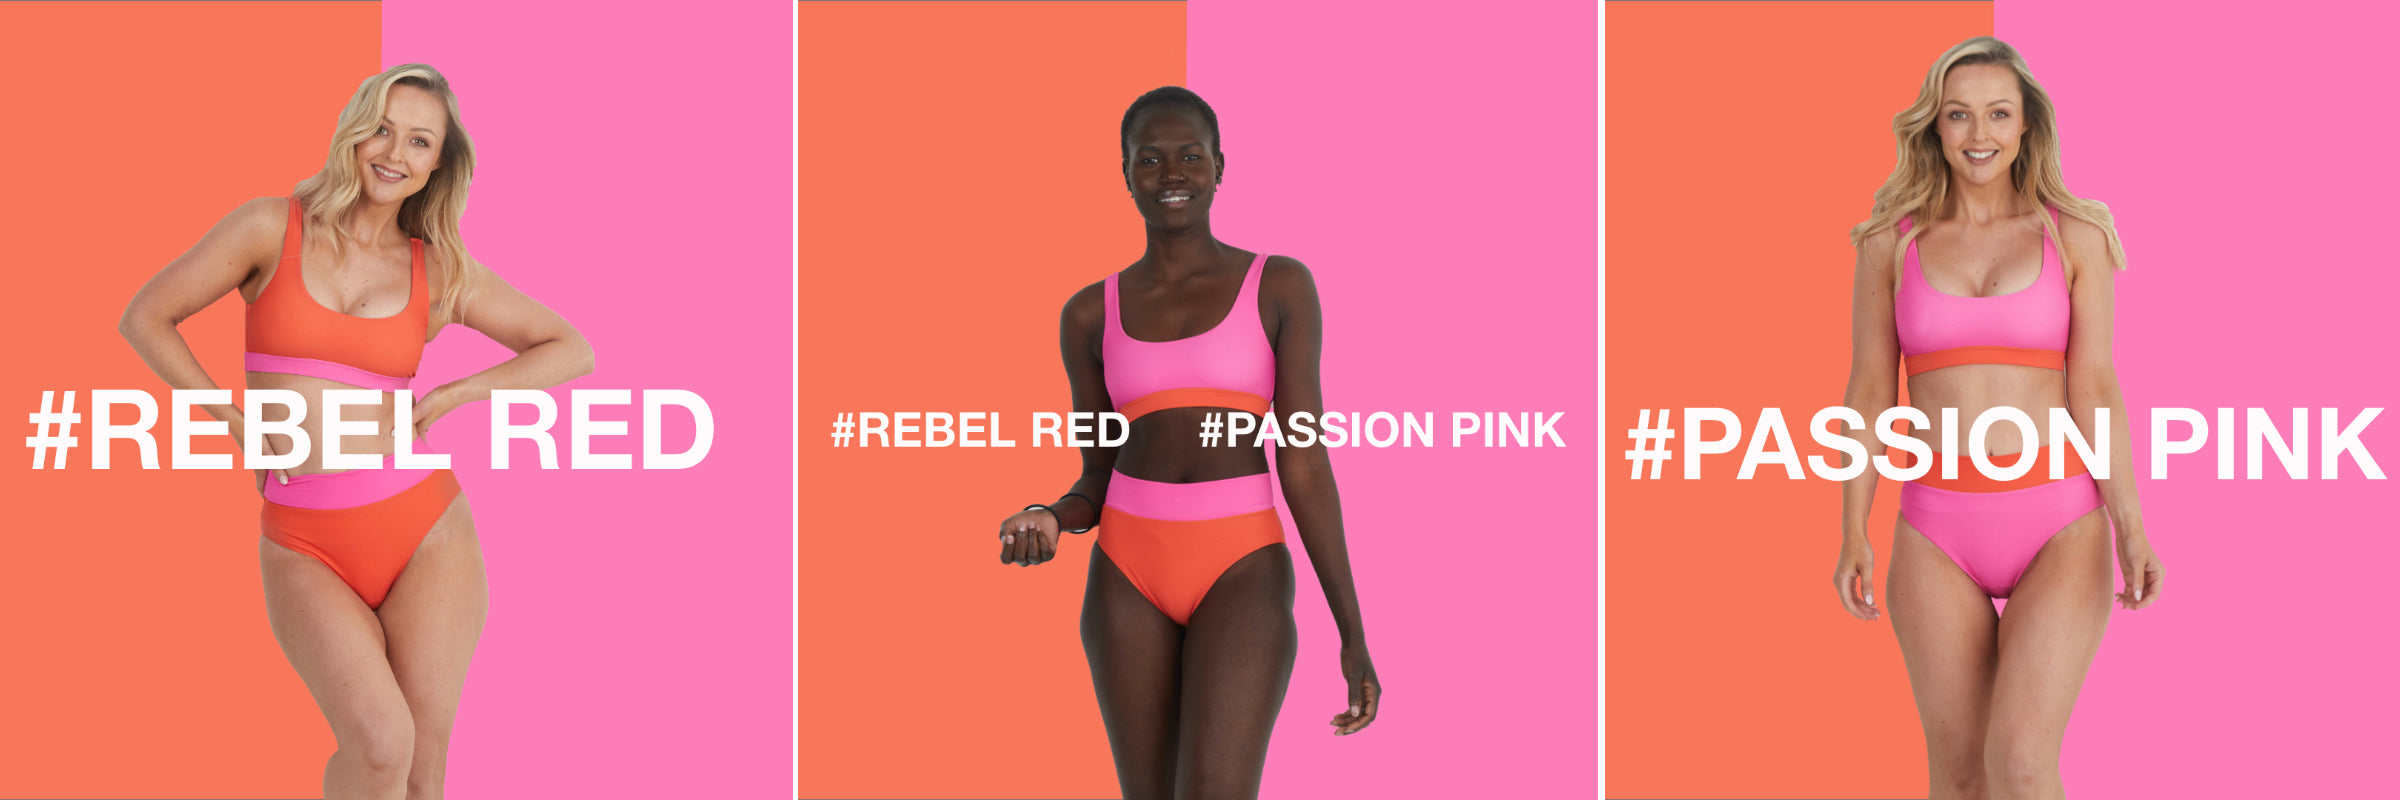 new infamous swim - rebel red and passion pink